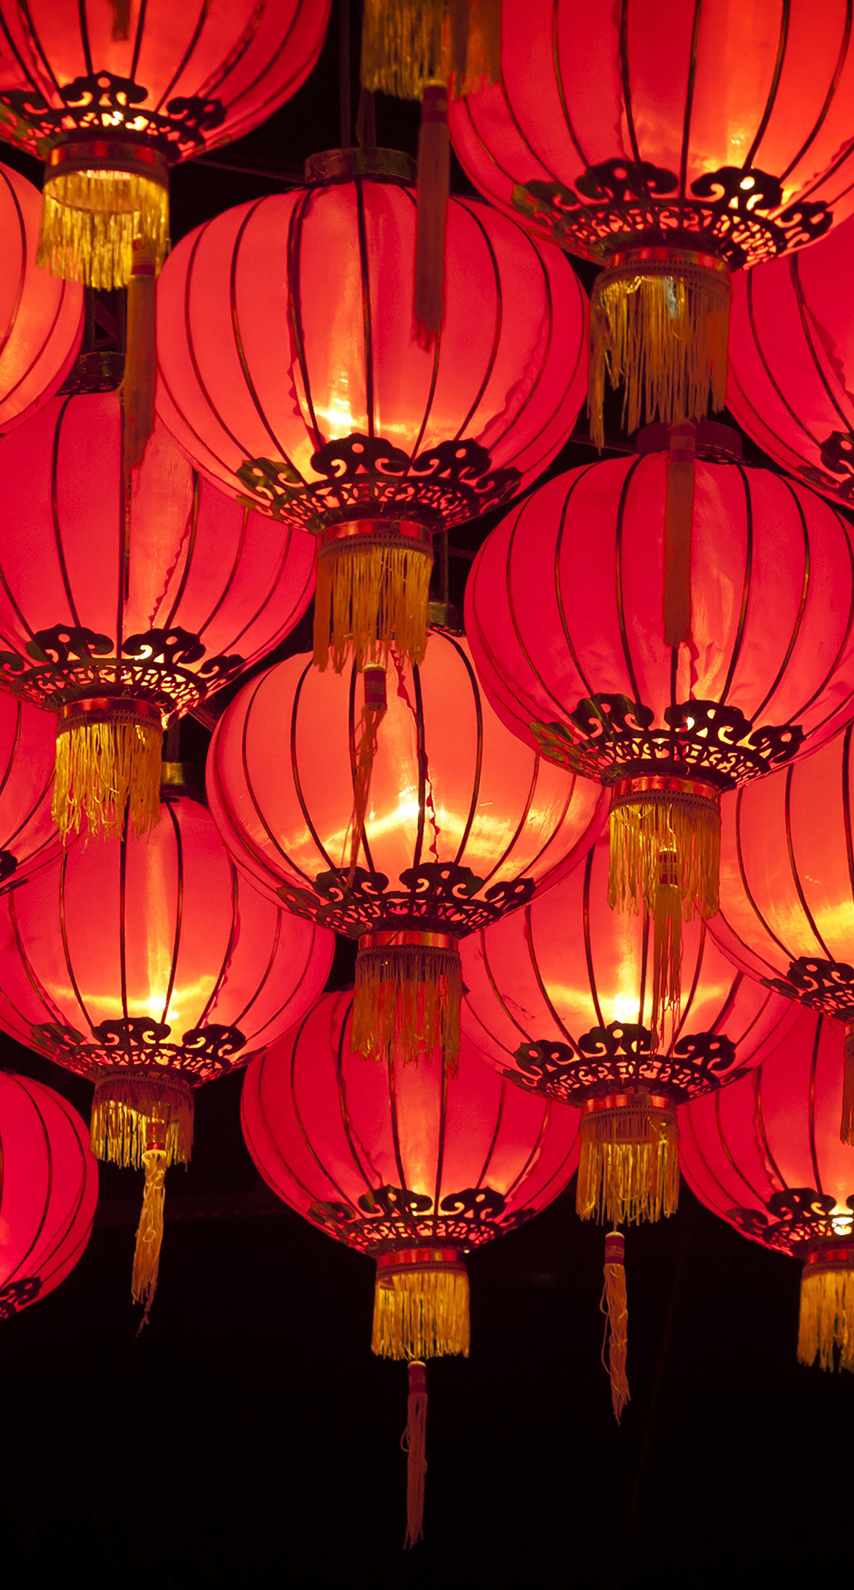 chandelier, mid autumn festival